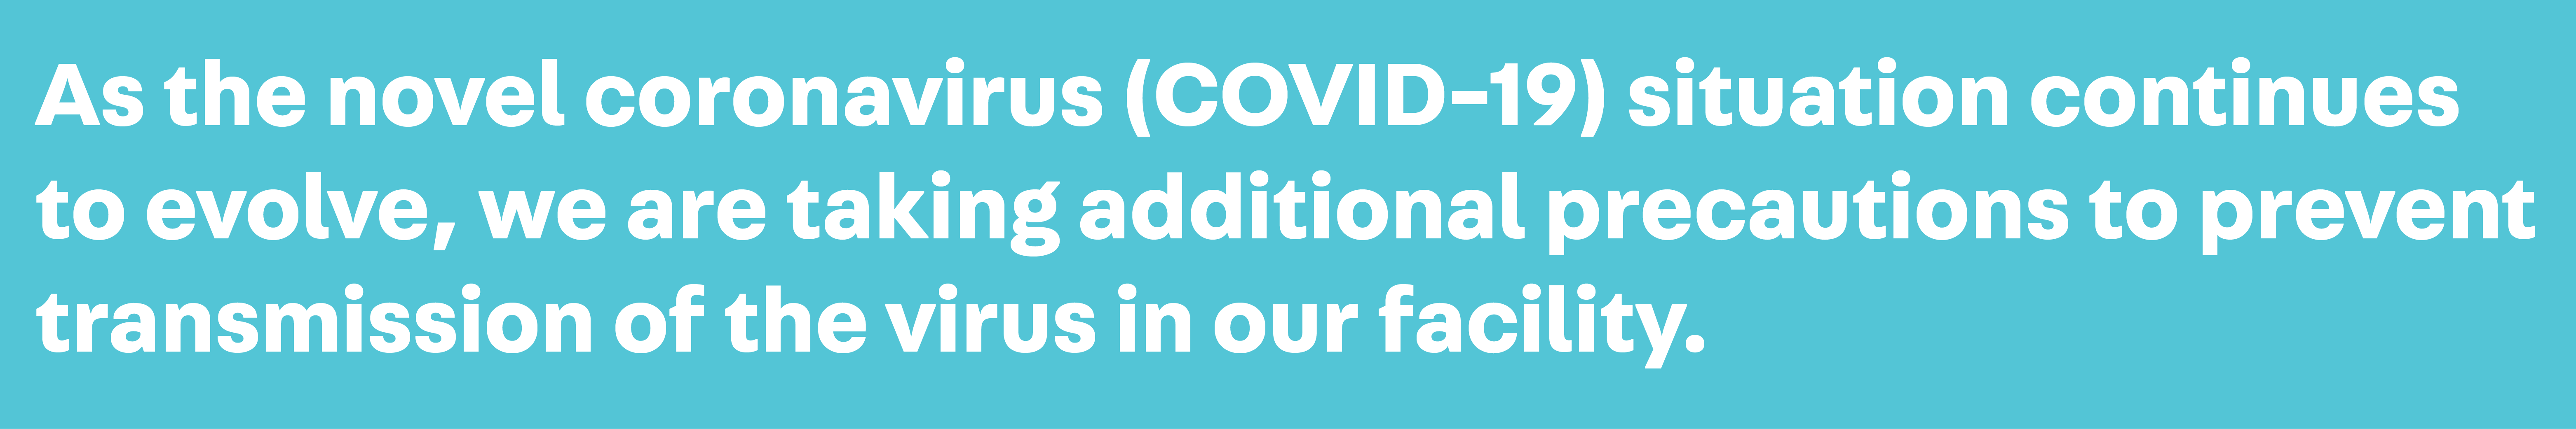 As the novel coronavirus (COVID-19) situation continues to evolve, we are taking additional precautions to prevent transmission of the virus in our facility.